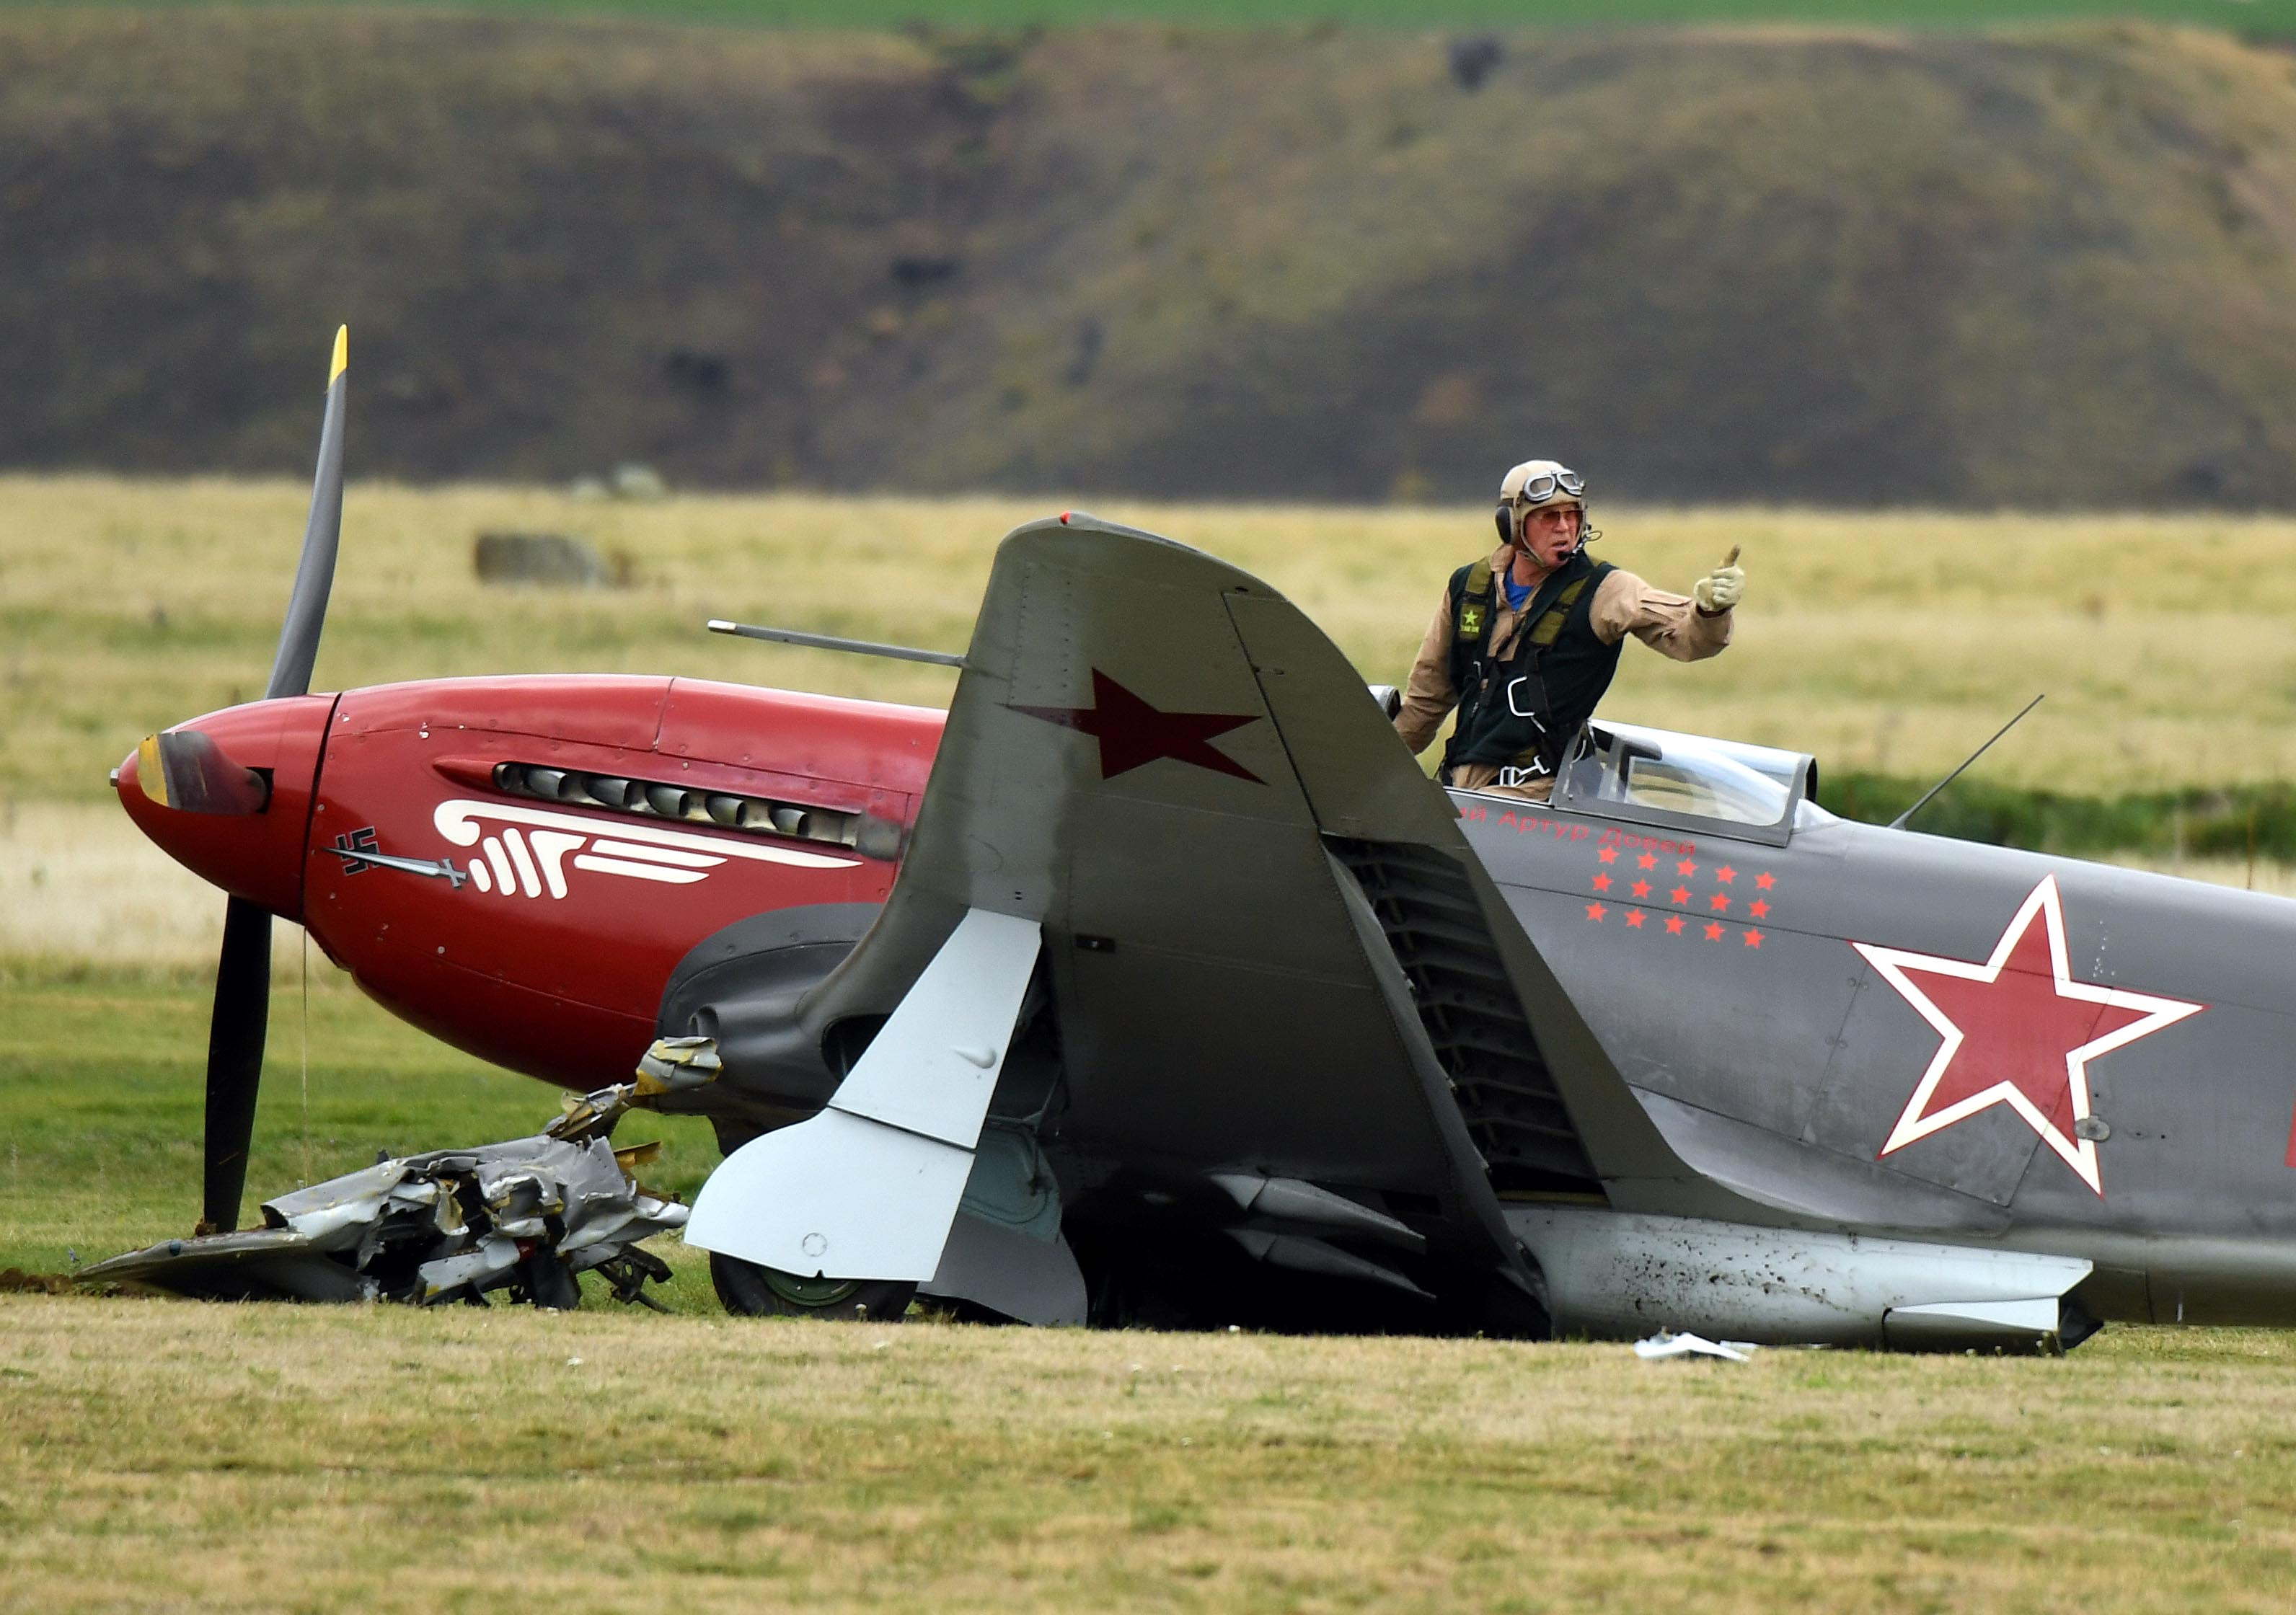 Plane crashes at Warbirds opening | Otago Daily Times Online News